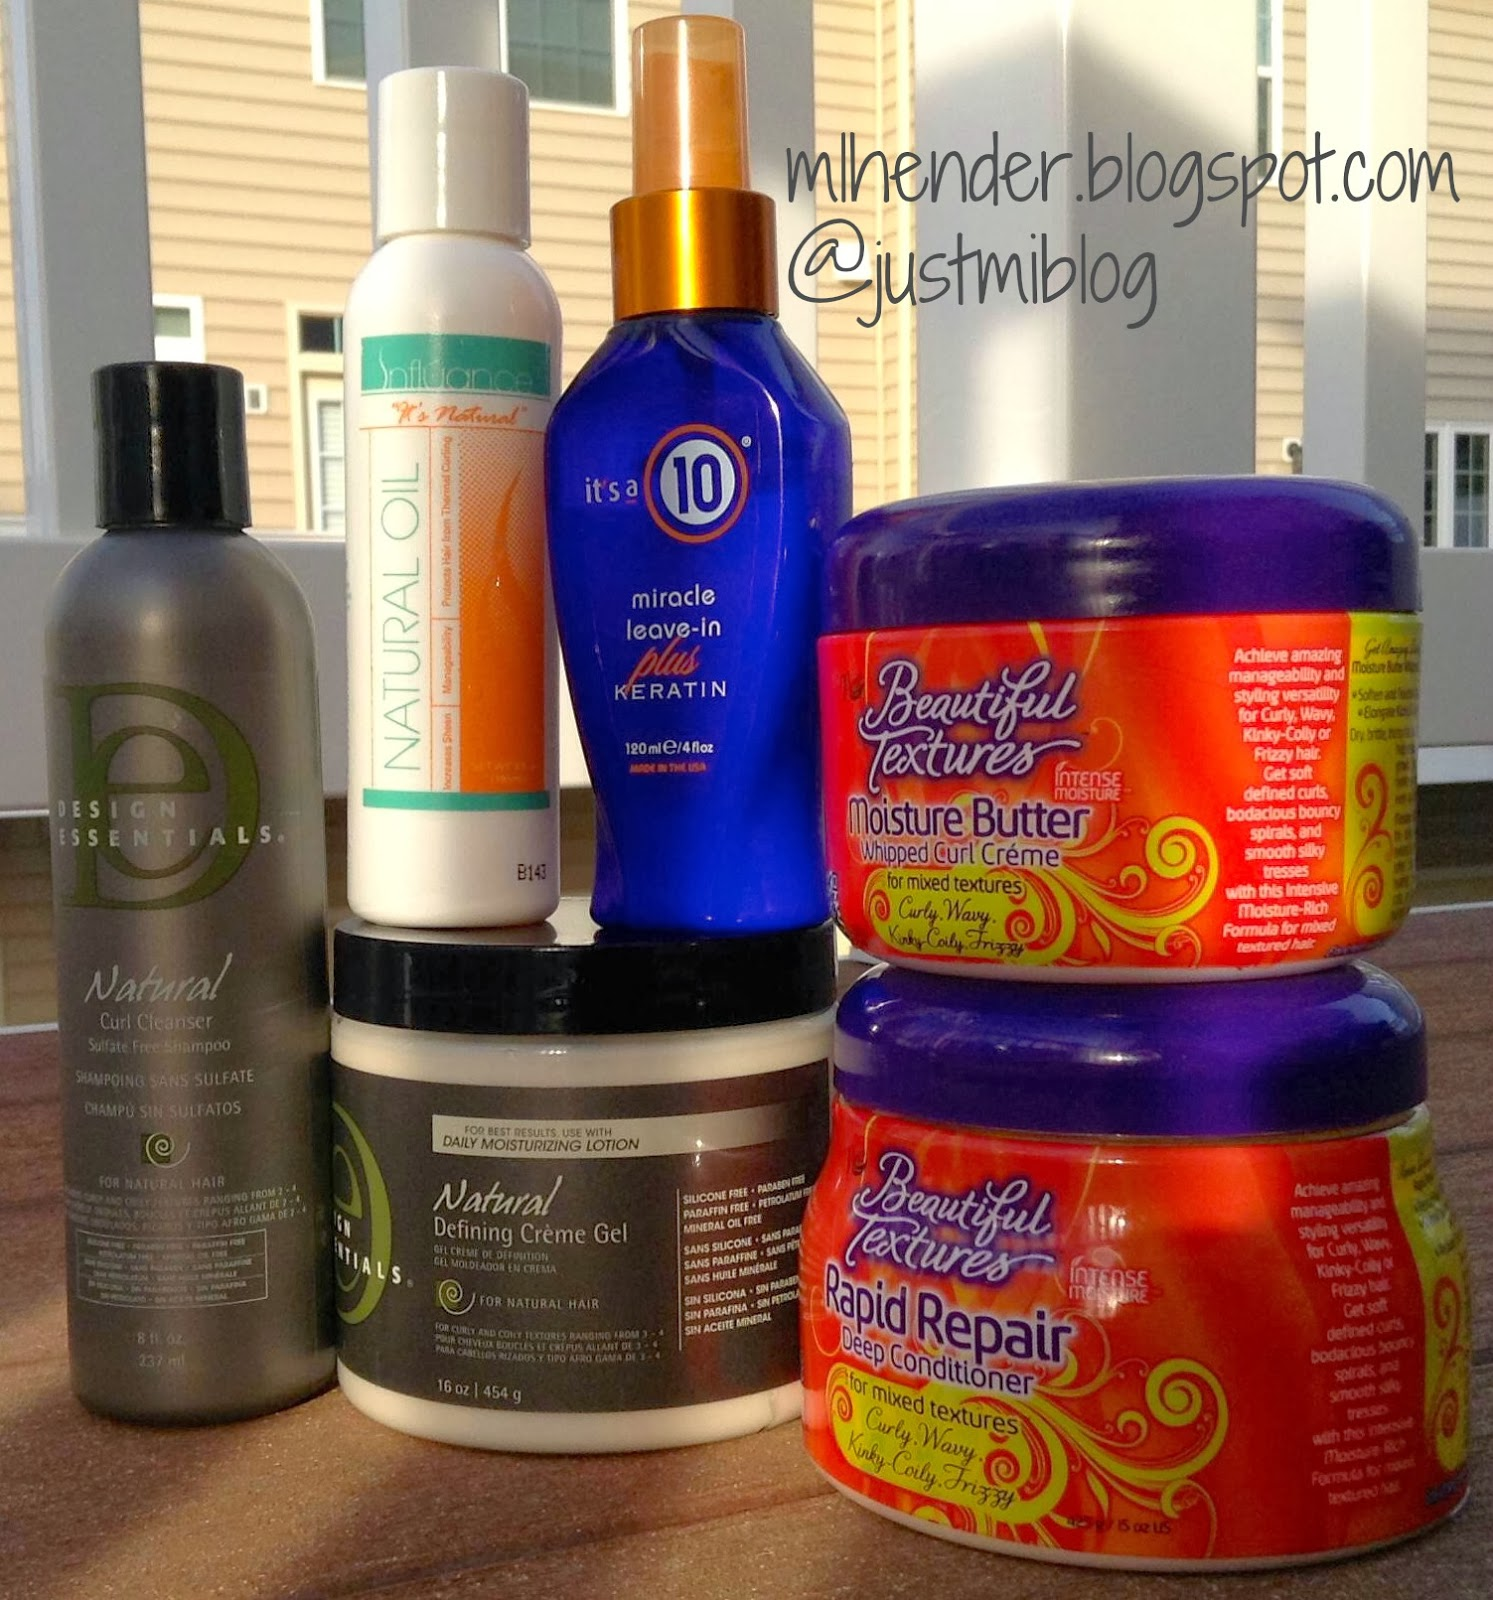 Products I used on my natural hair for a flexi rod set.